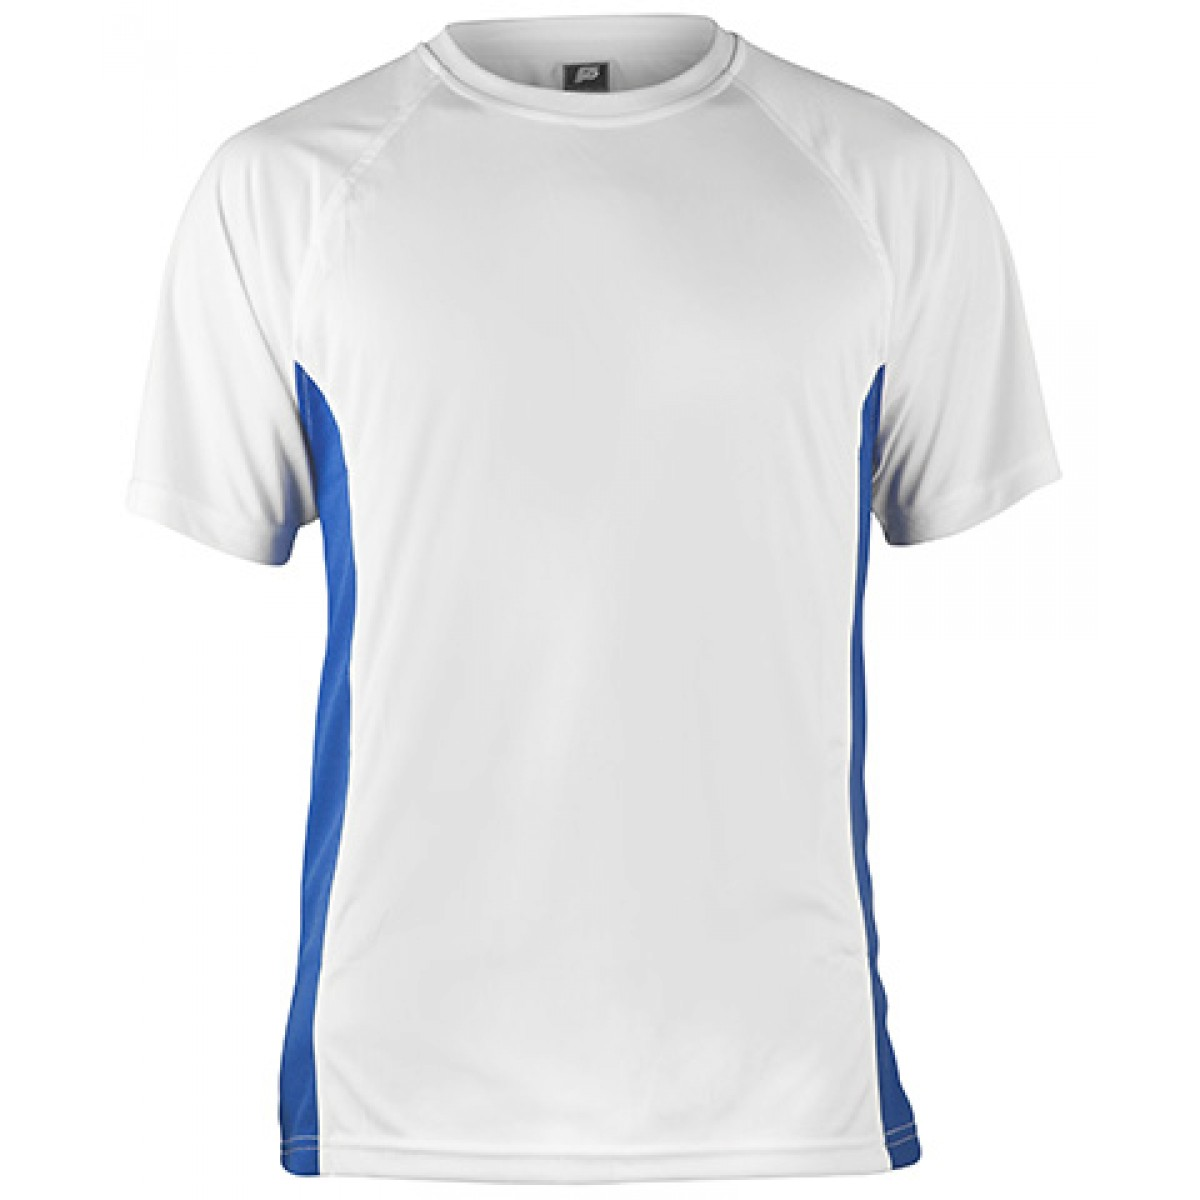 Short Sleeves Performance With Side Insert